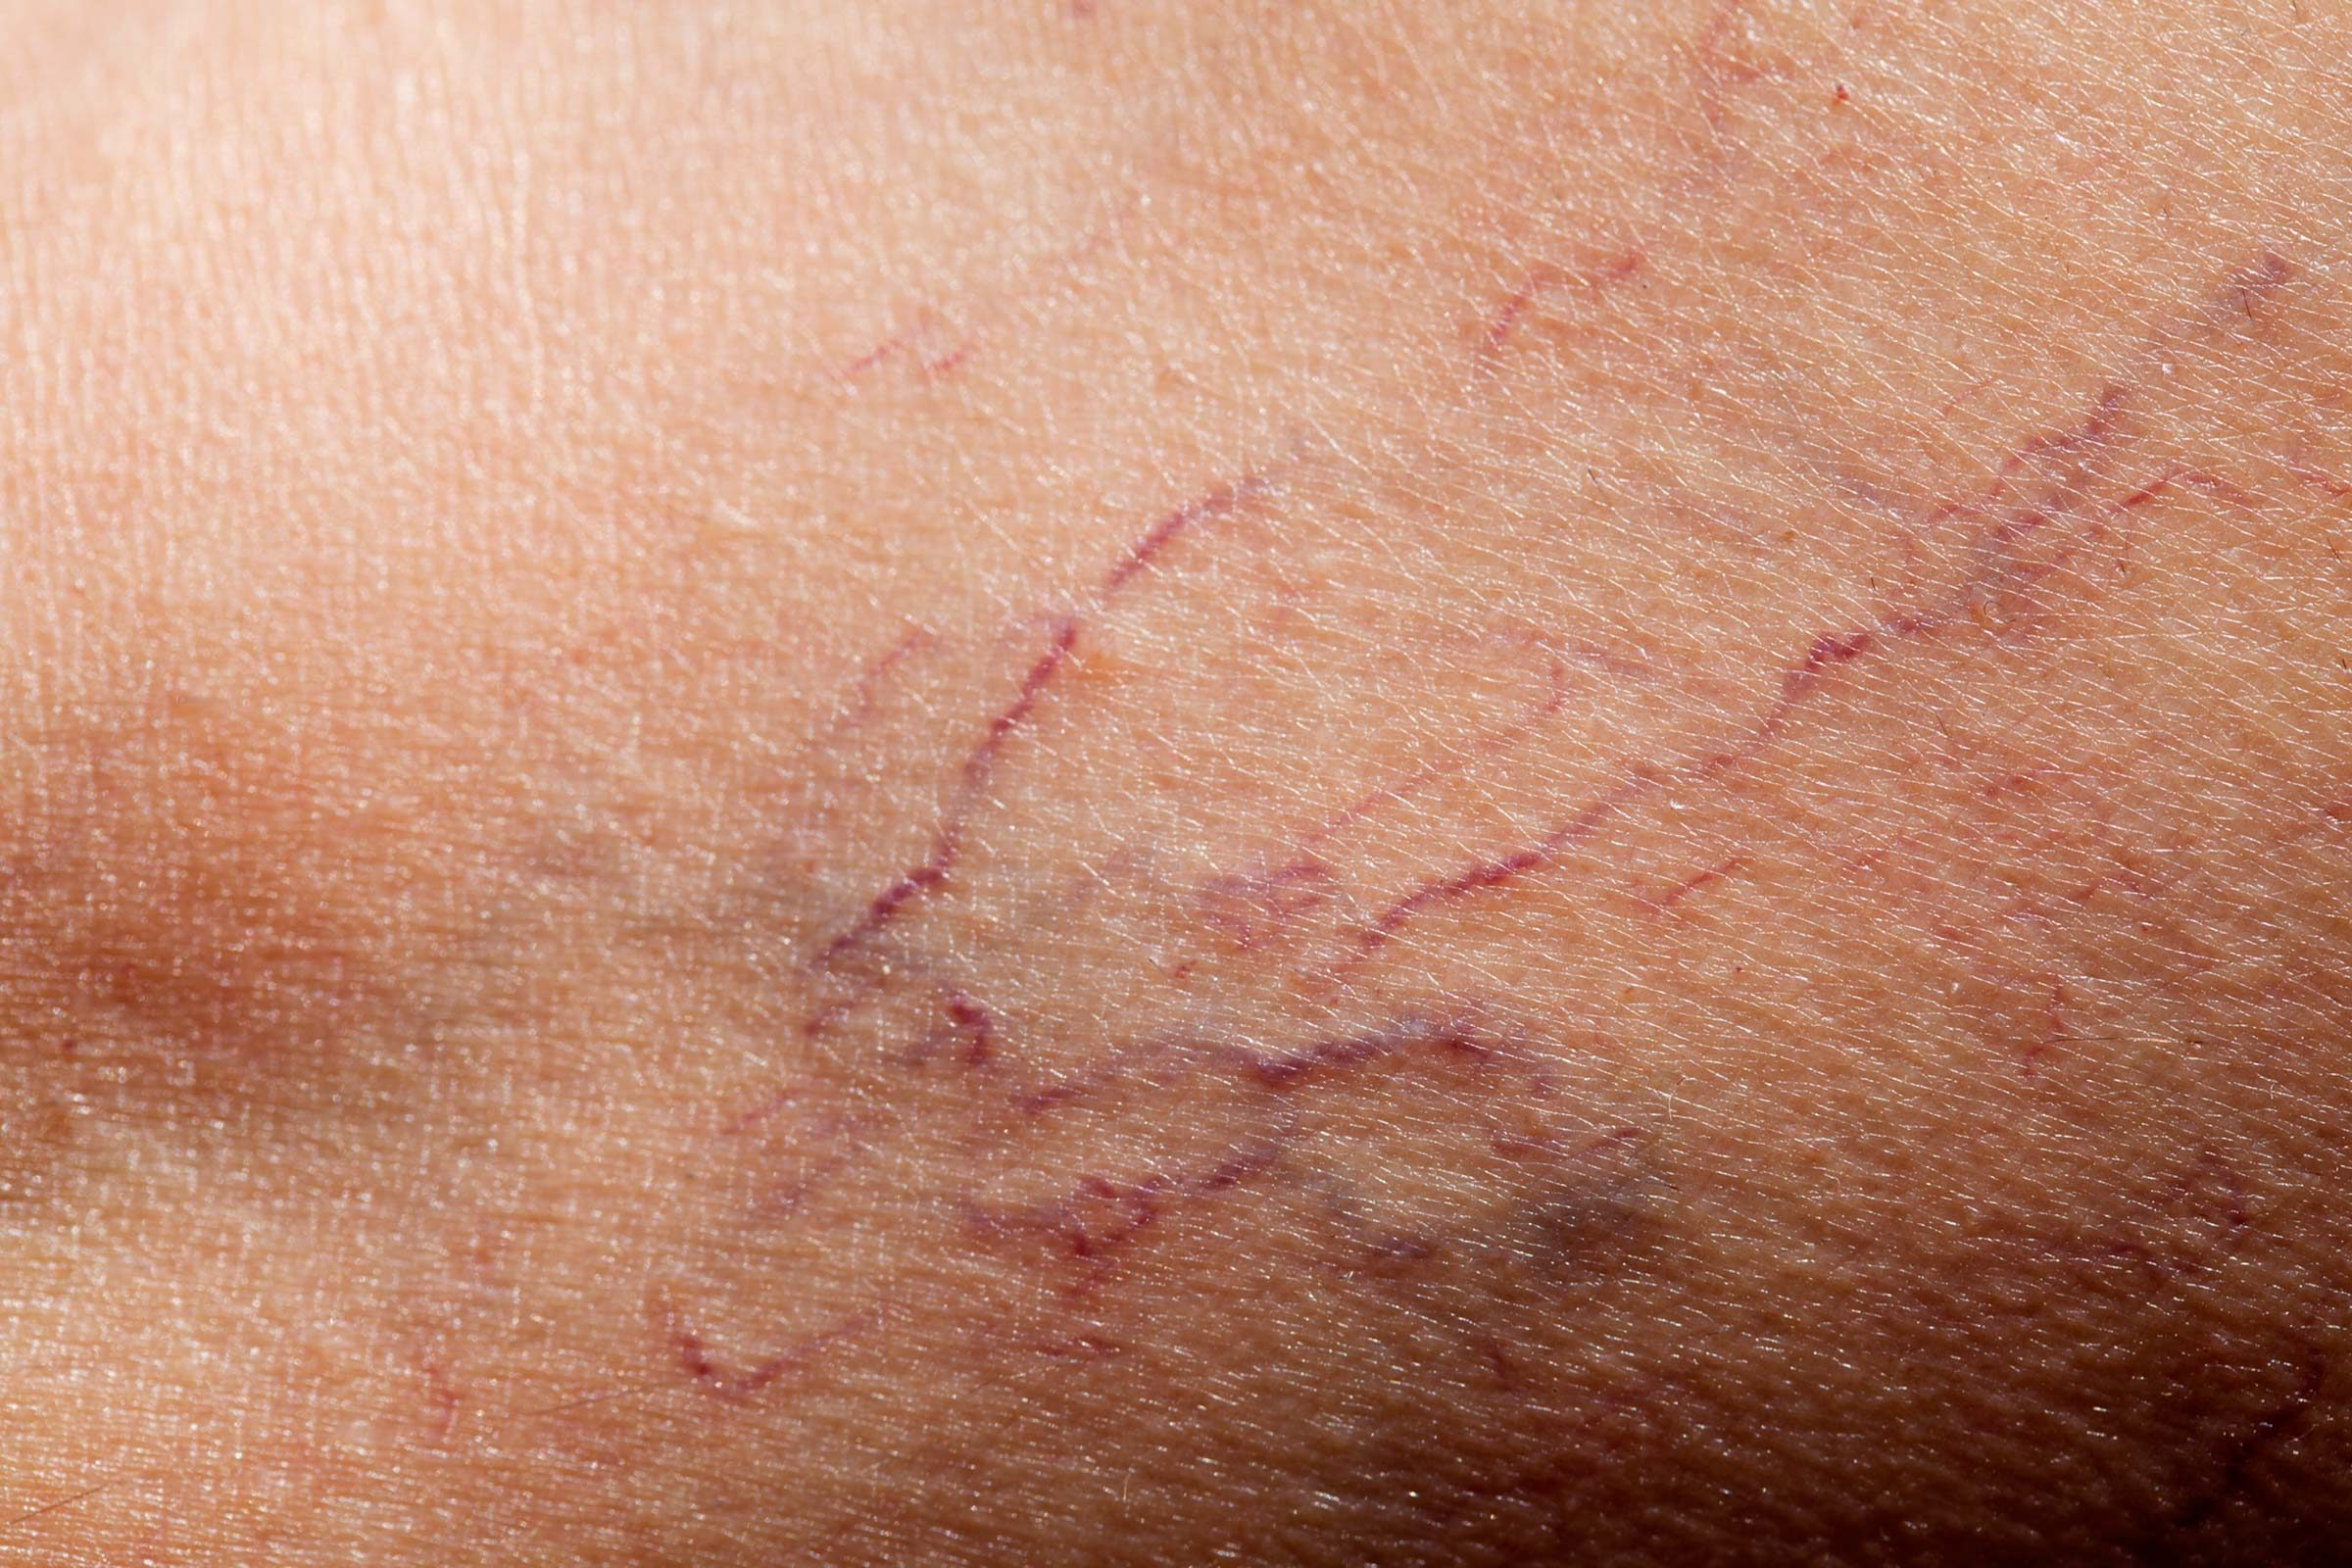 10 Ways to Erase Broken Capillaries—and Prevent Them Completely